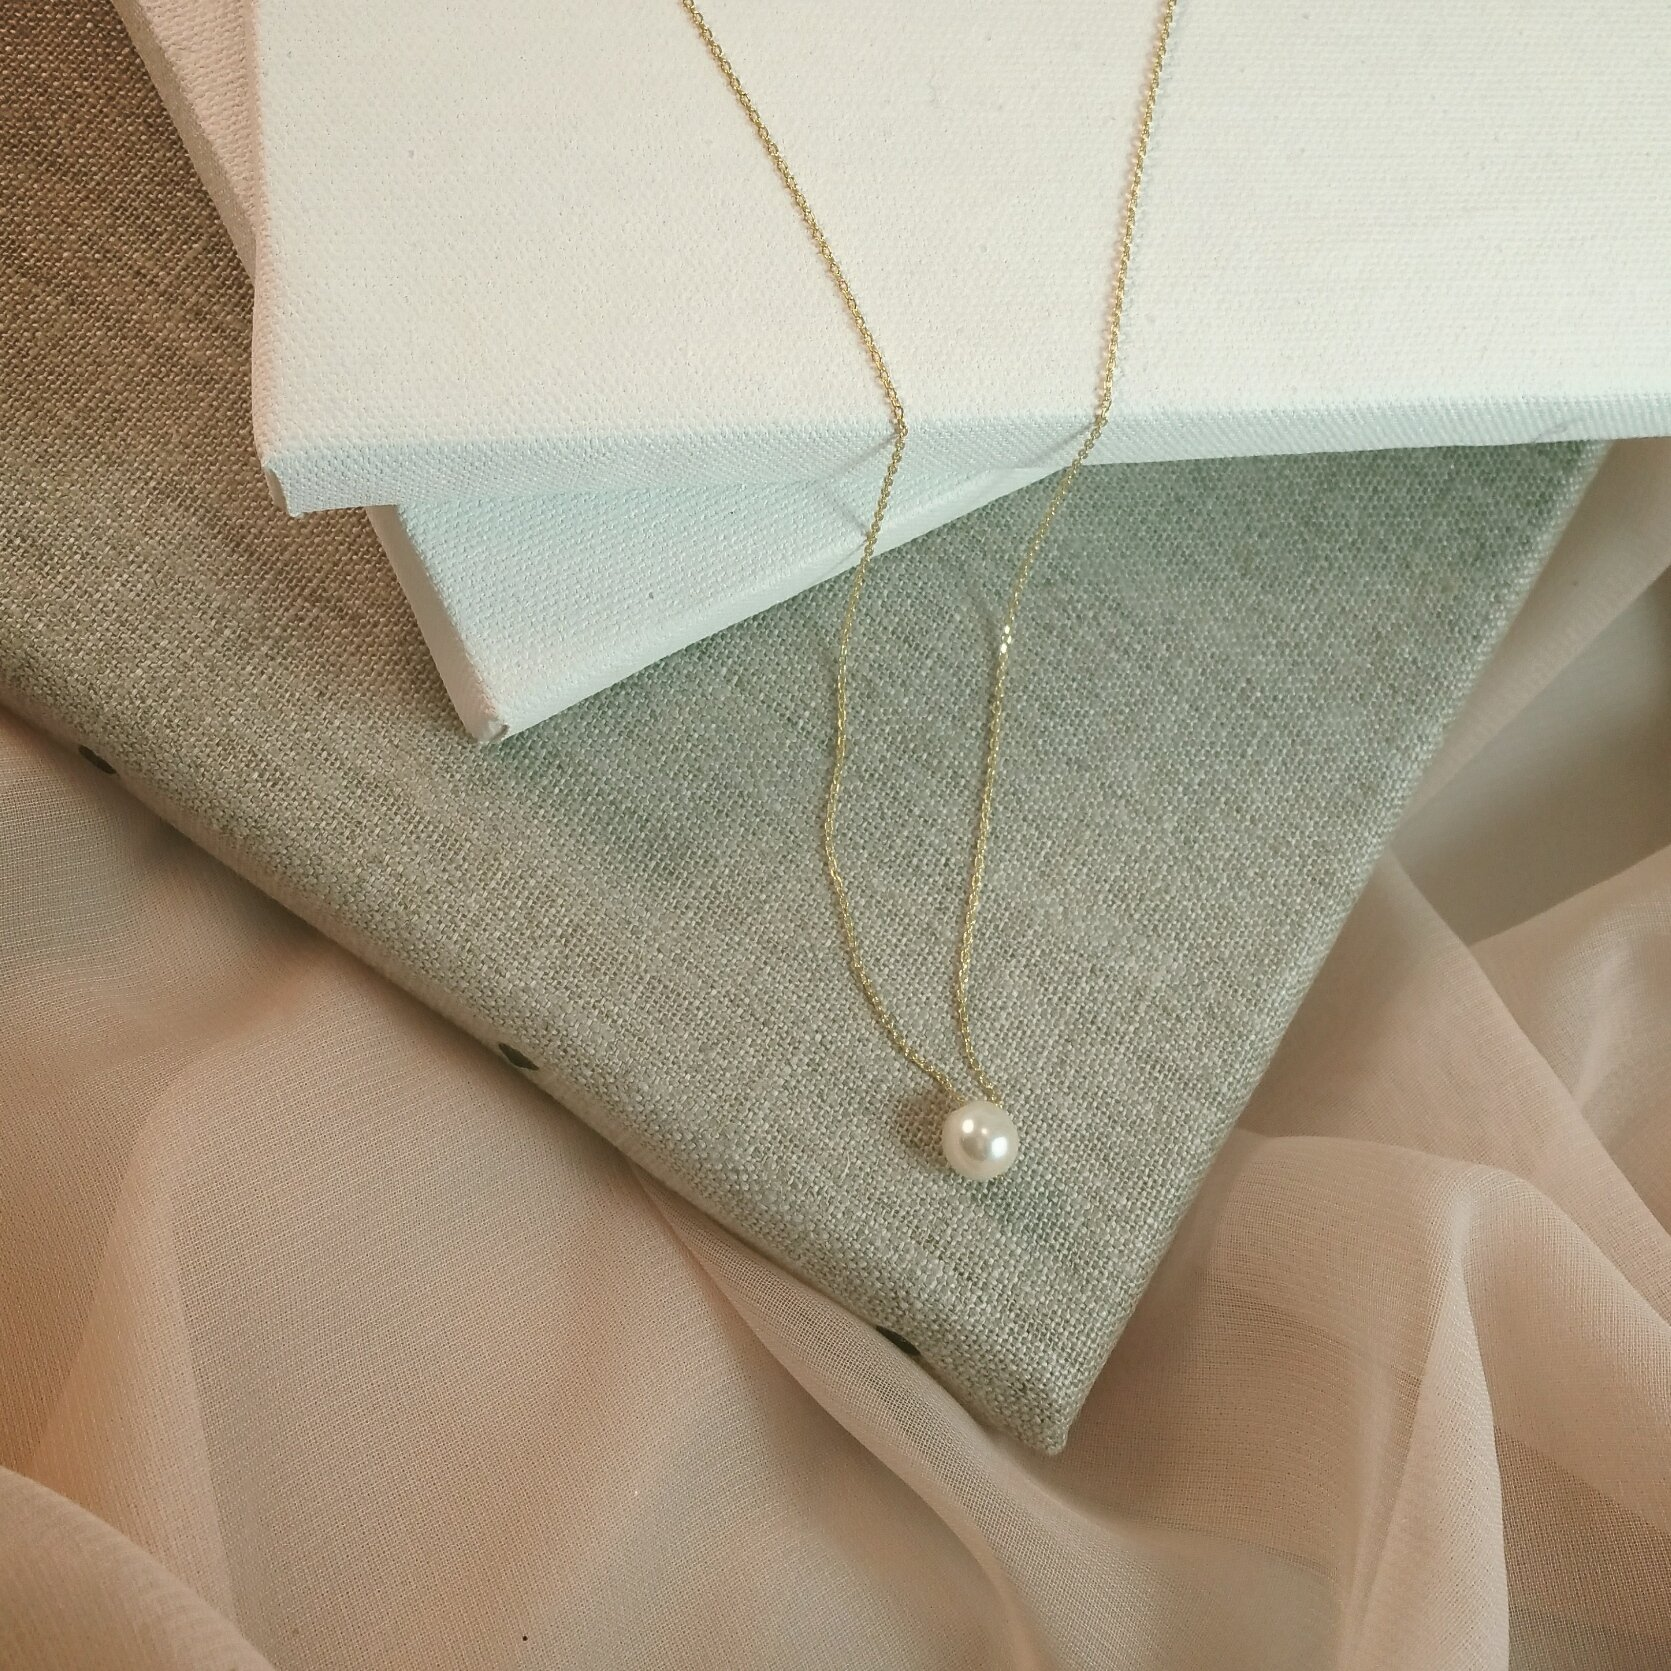 Bridesmaid Gifts- Pretty Single Floating BridalPearl Necklace, Gold Color, Set of 8 by Bride Dazzle (Image #3)